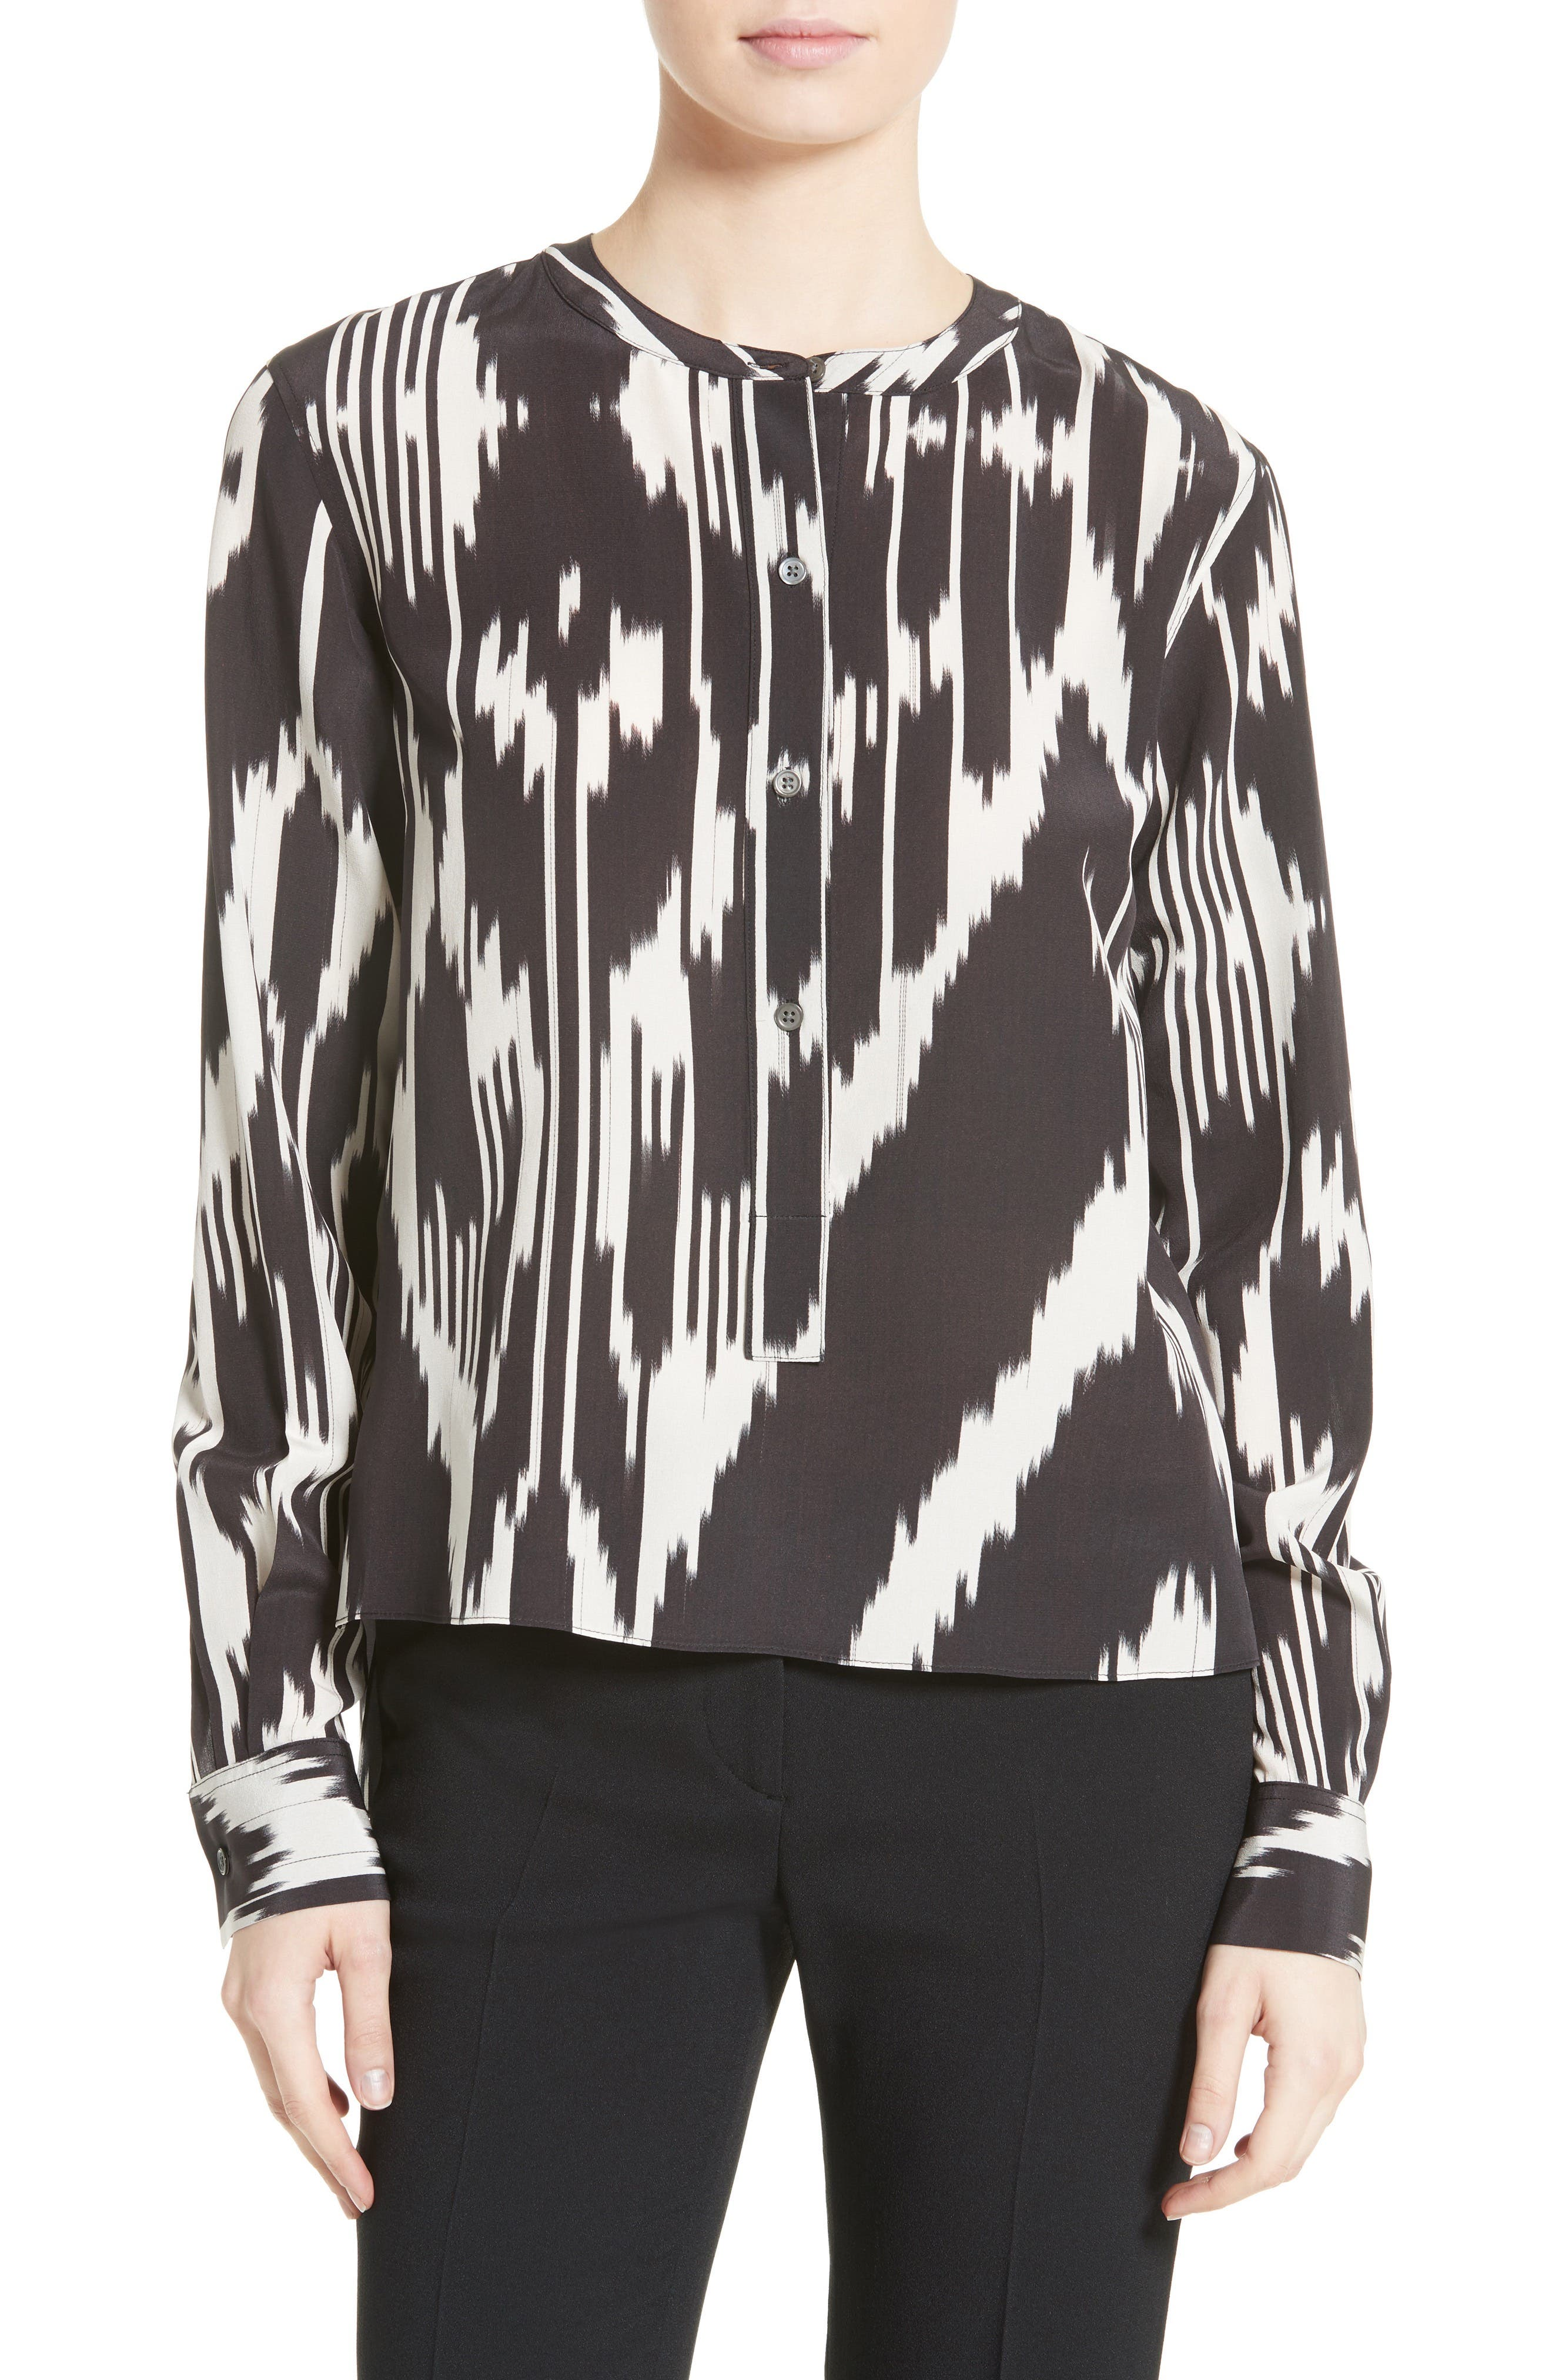 Isalva Interlace Ikat Silk Top,                         Main,                         color, 015